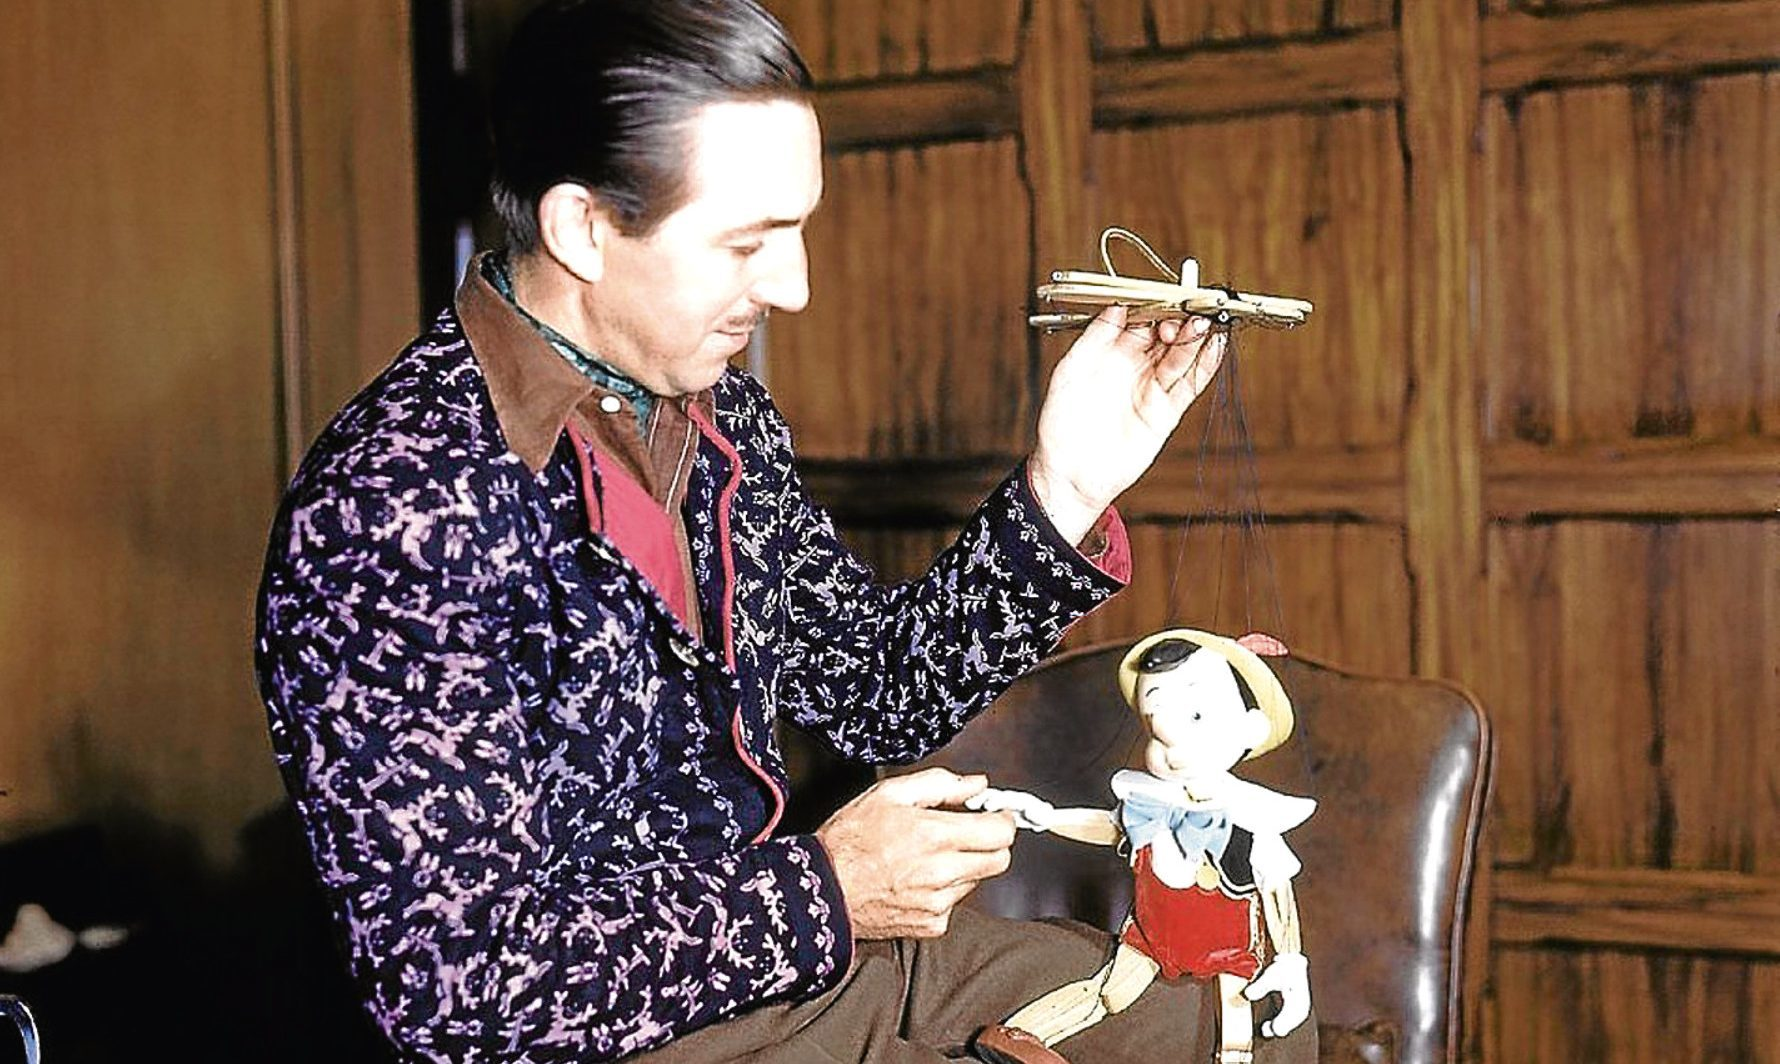 Walt Disney with one of his films' characters, Pinocchio, 1940 (Allstar/DISNEY)